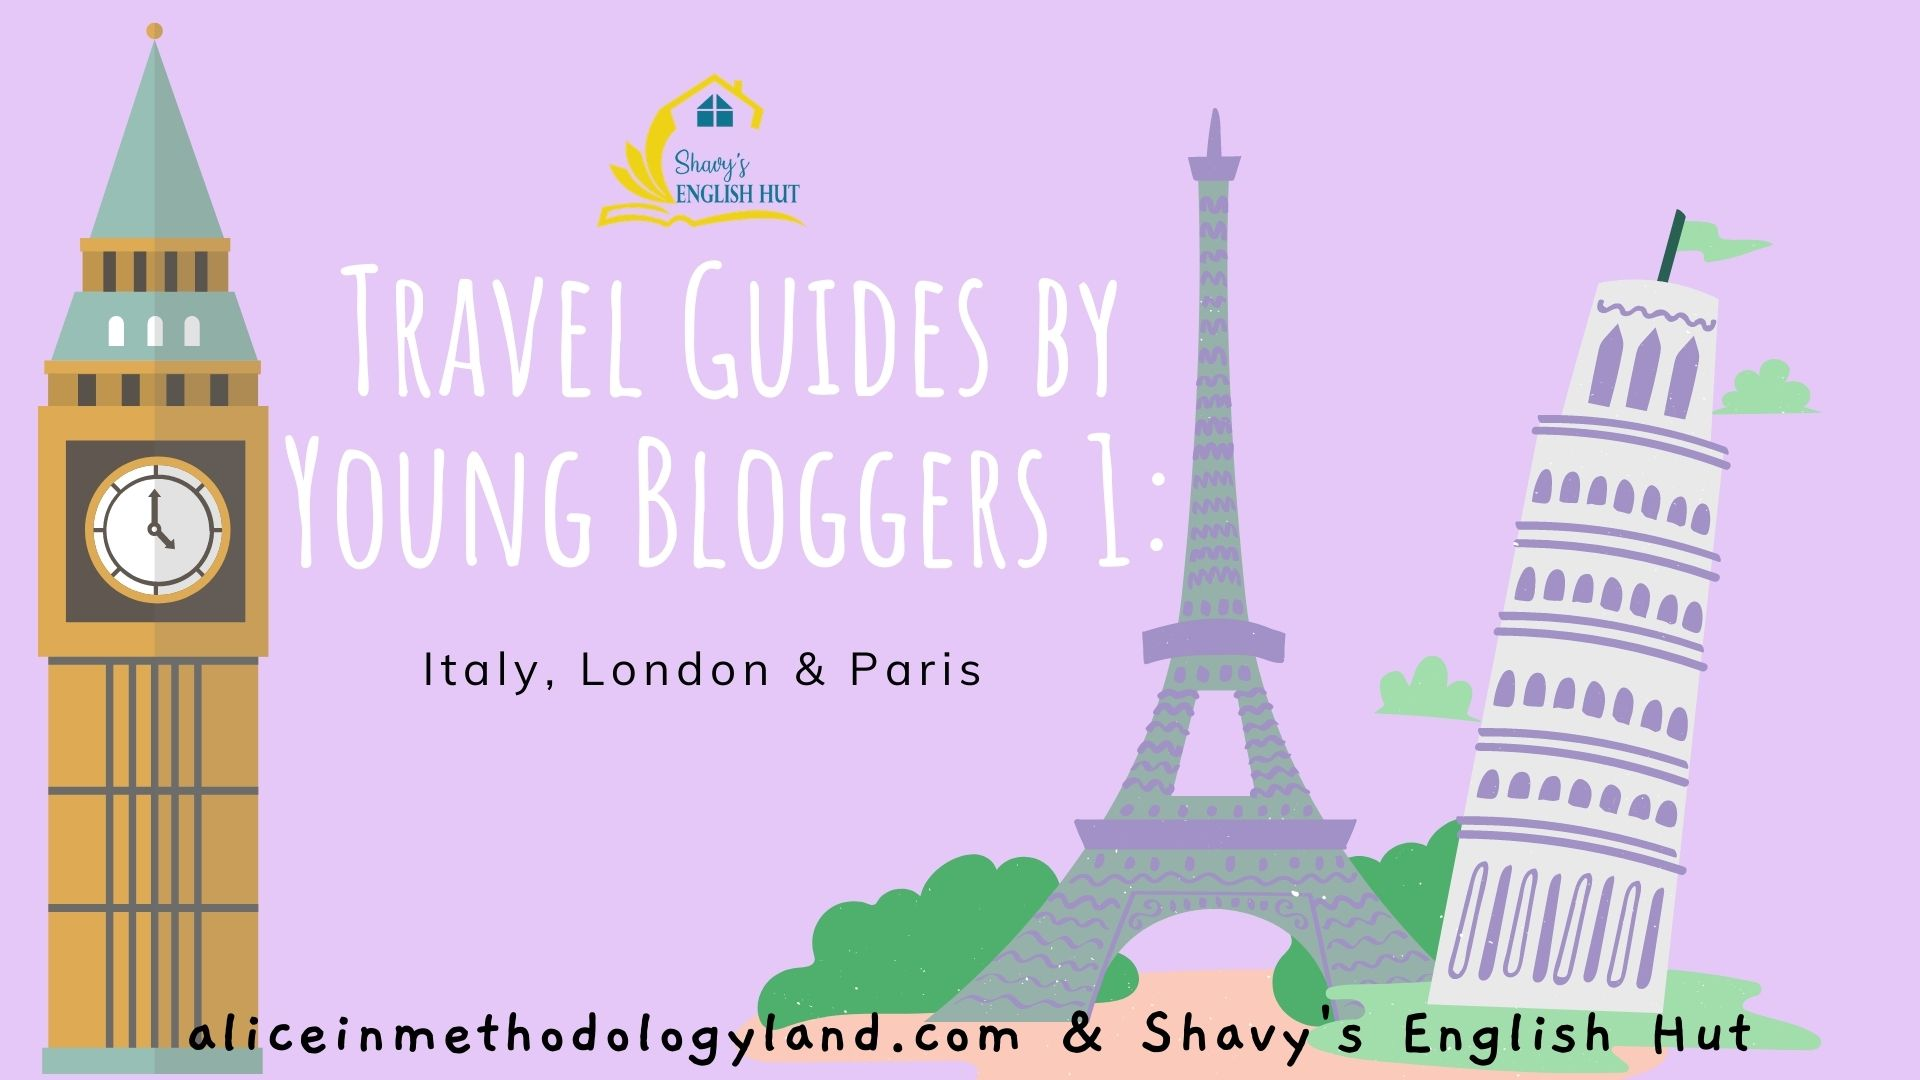 How to Write a Travel Guide: Young Bloggers part 1 – Italy, London & Paris